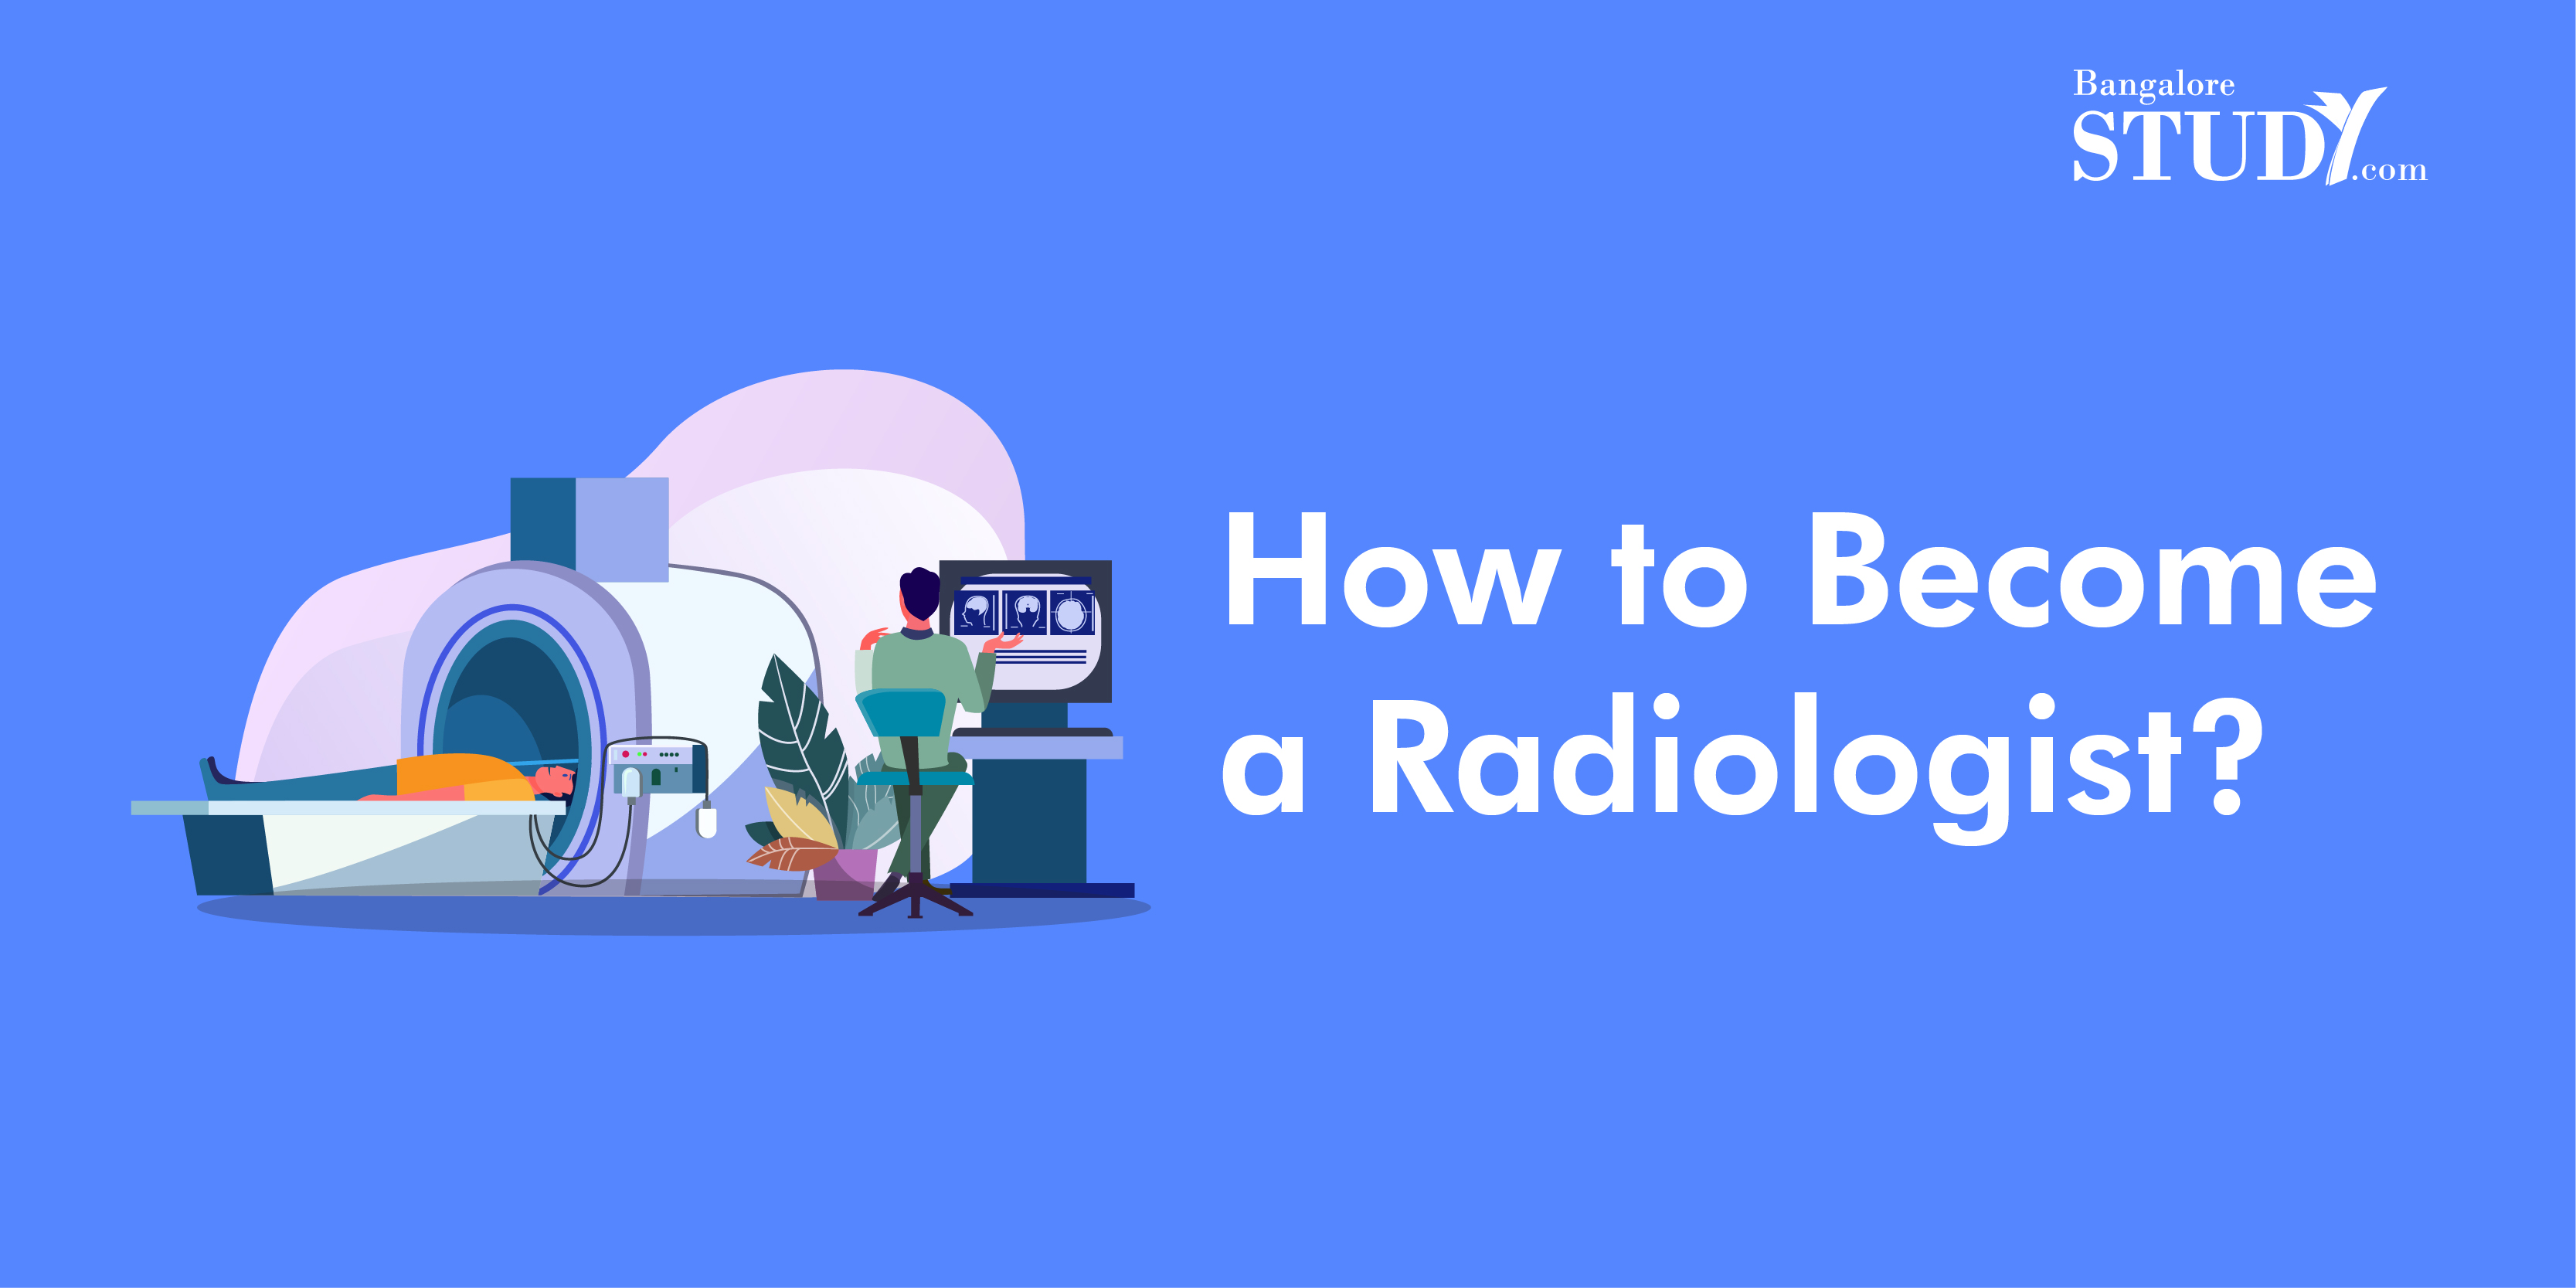 How to Become a Radiologist?